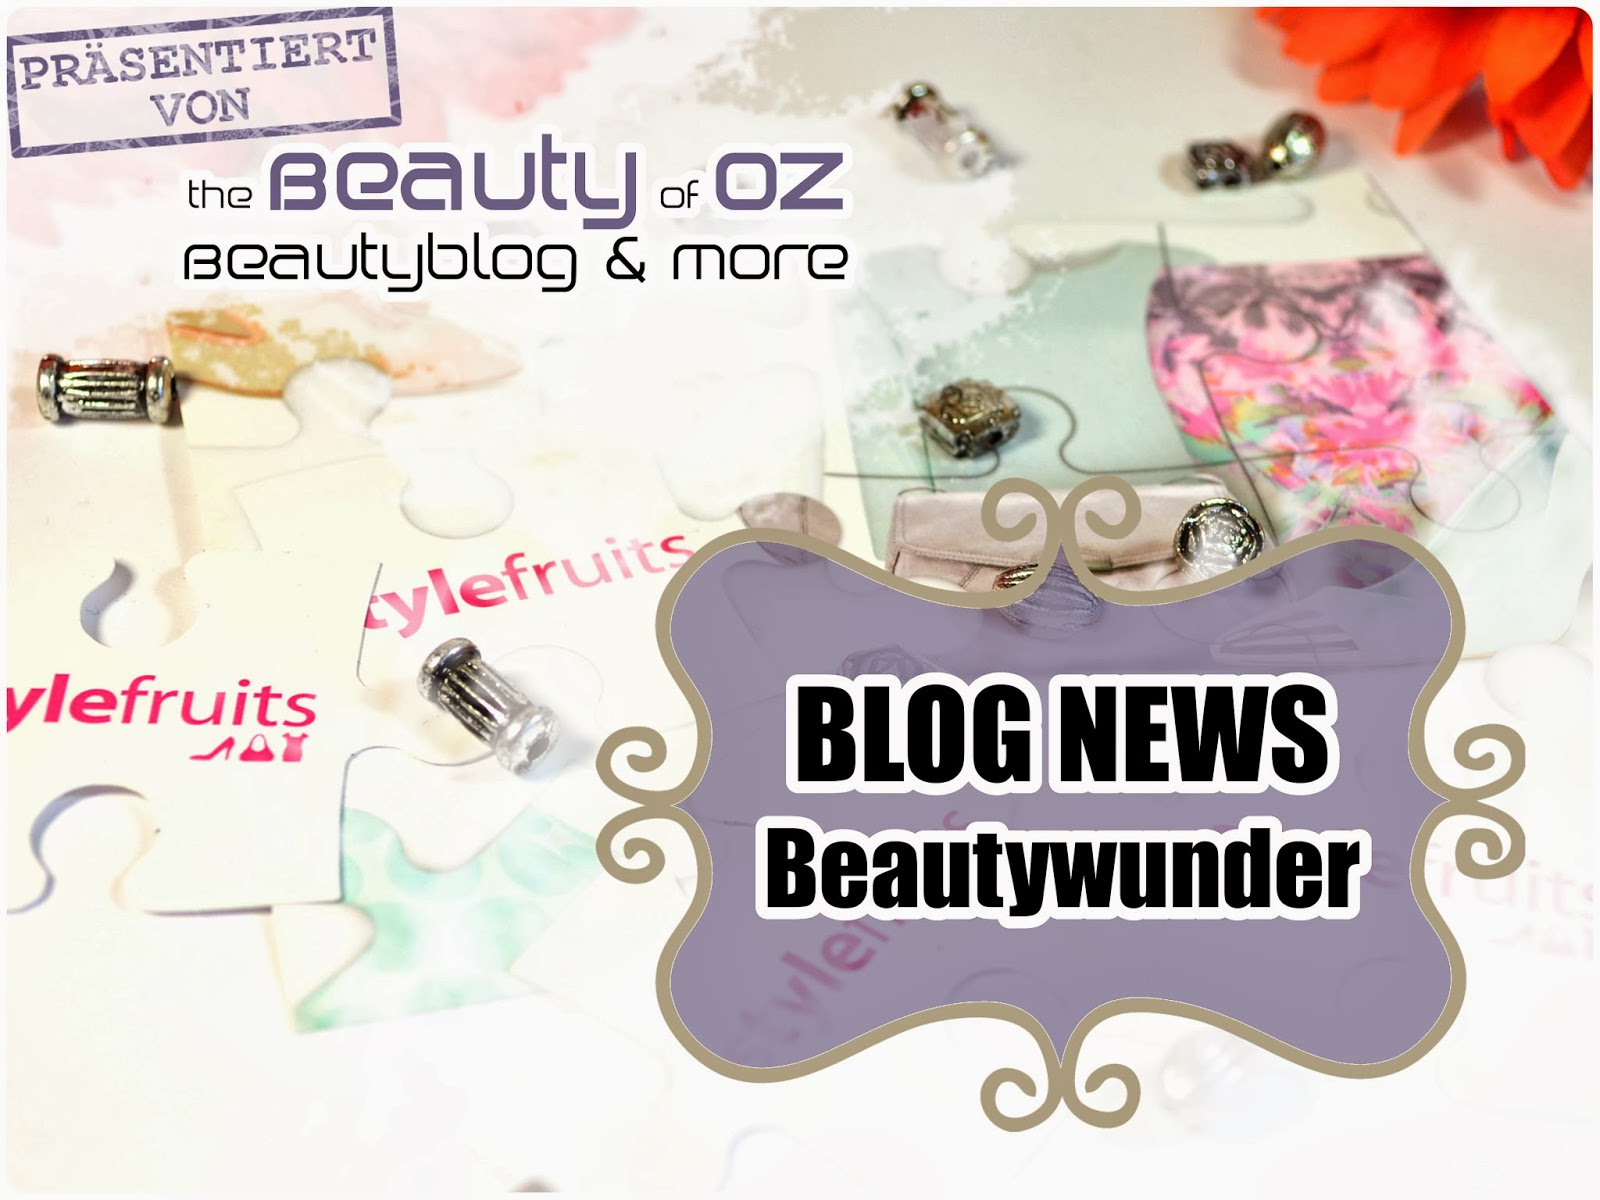 The Beauty of Oz ist das neue Beautywunder